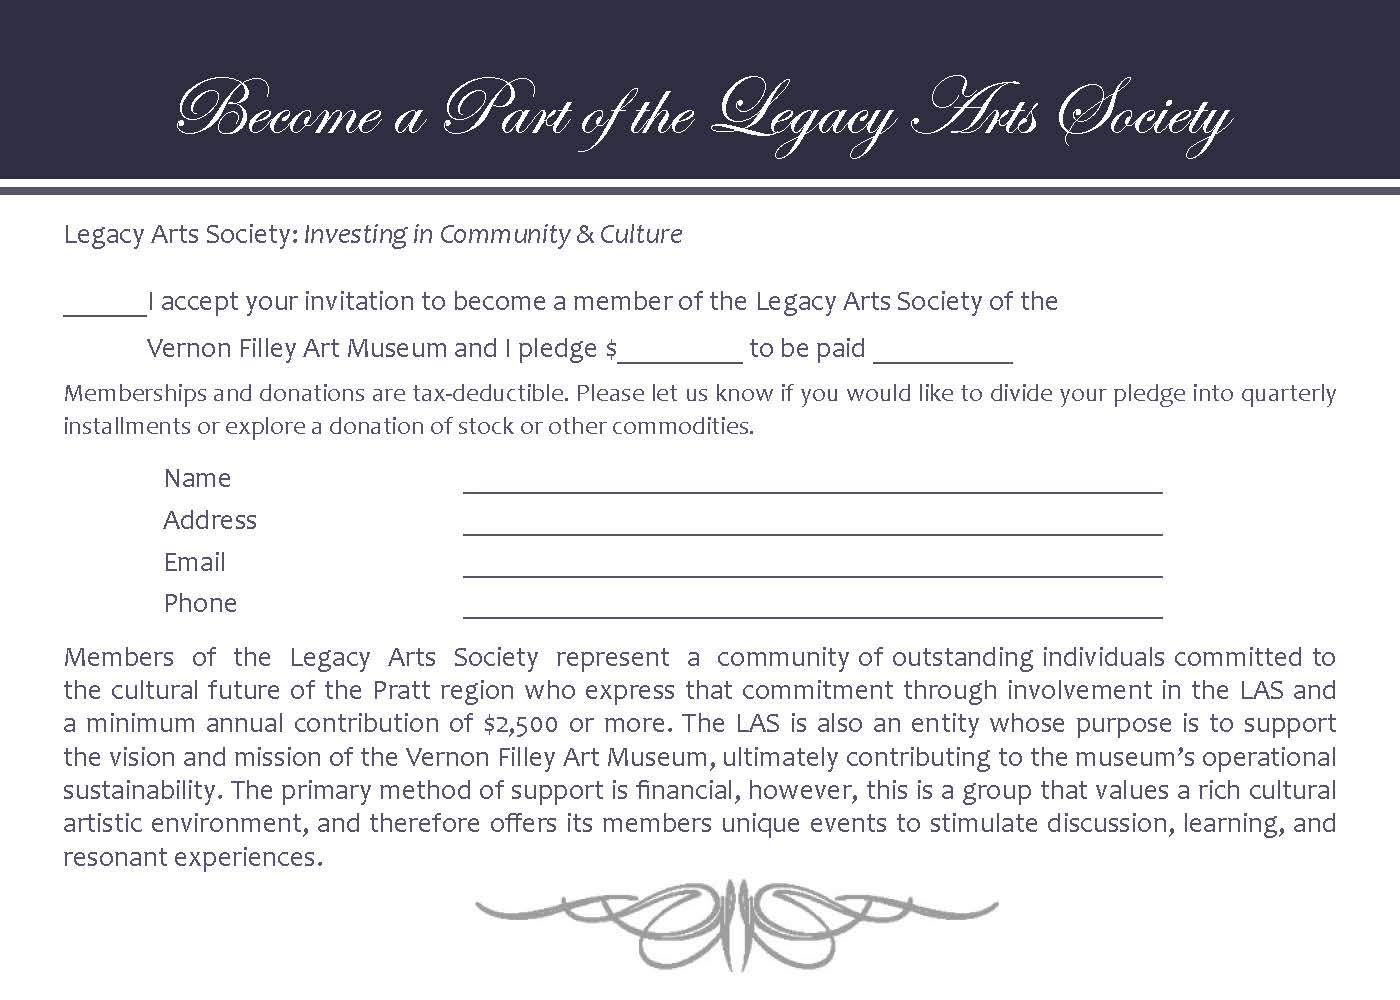 Legacy Arts Soceity Invitation_Page_2